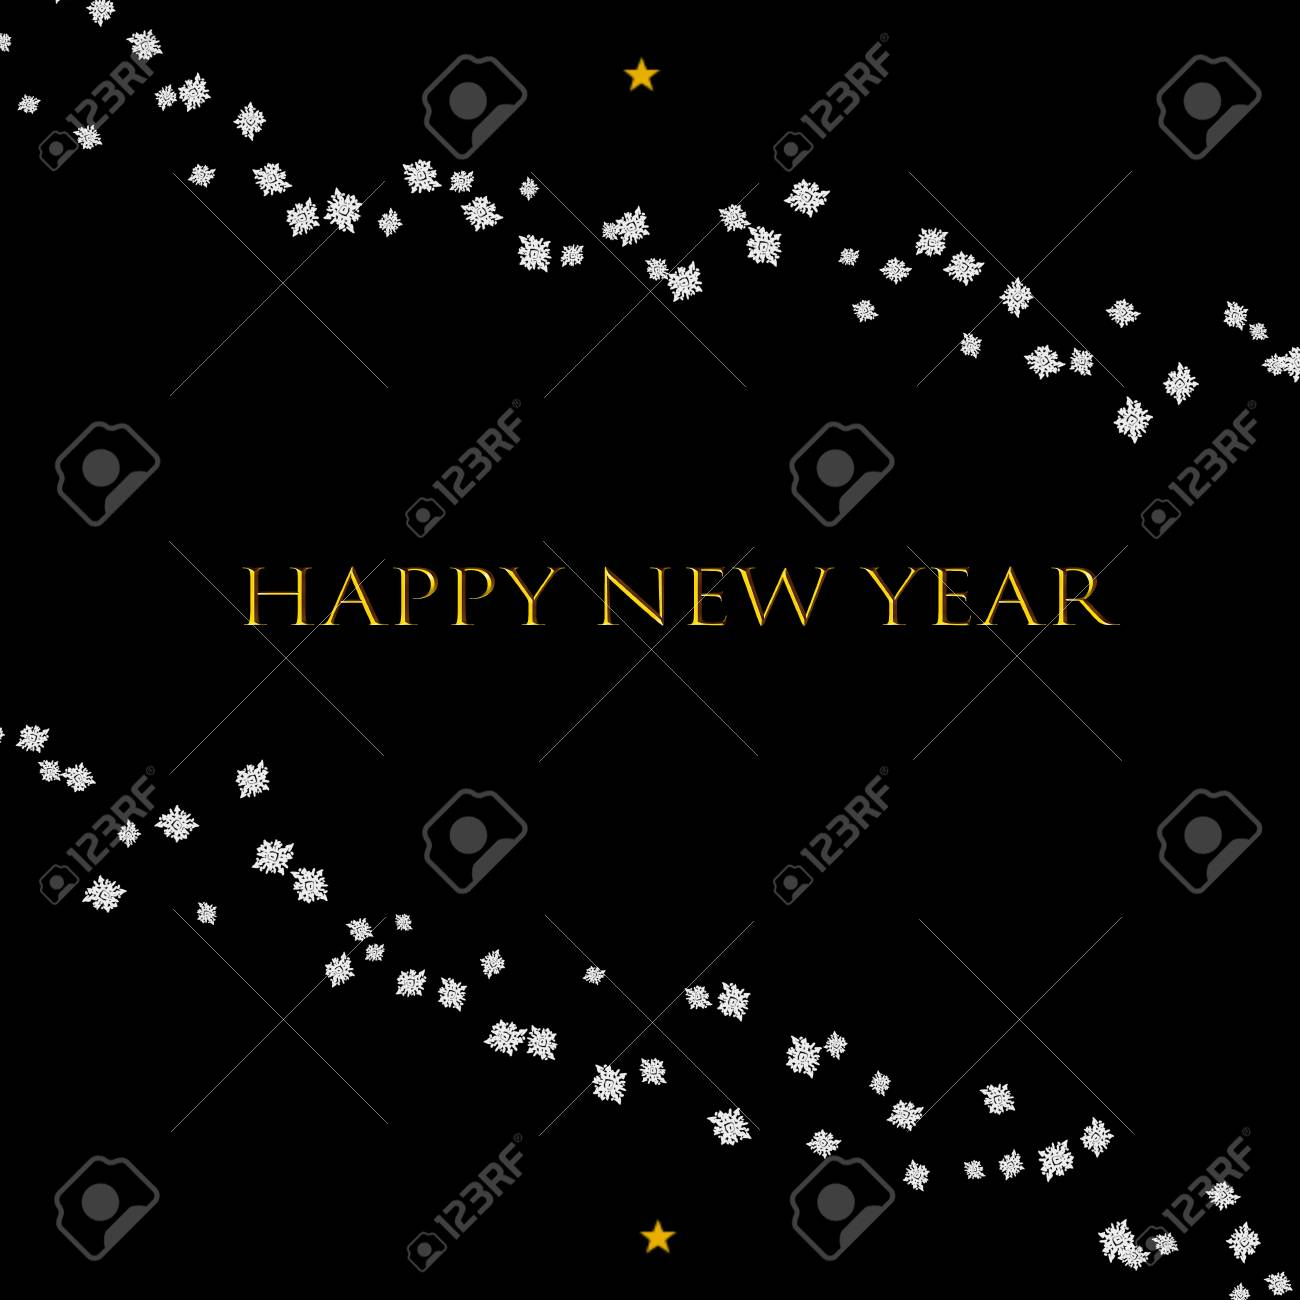 minimalist black happy new year card with snowflakes stock photo 88056770